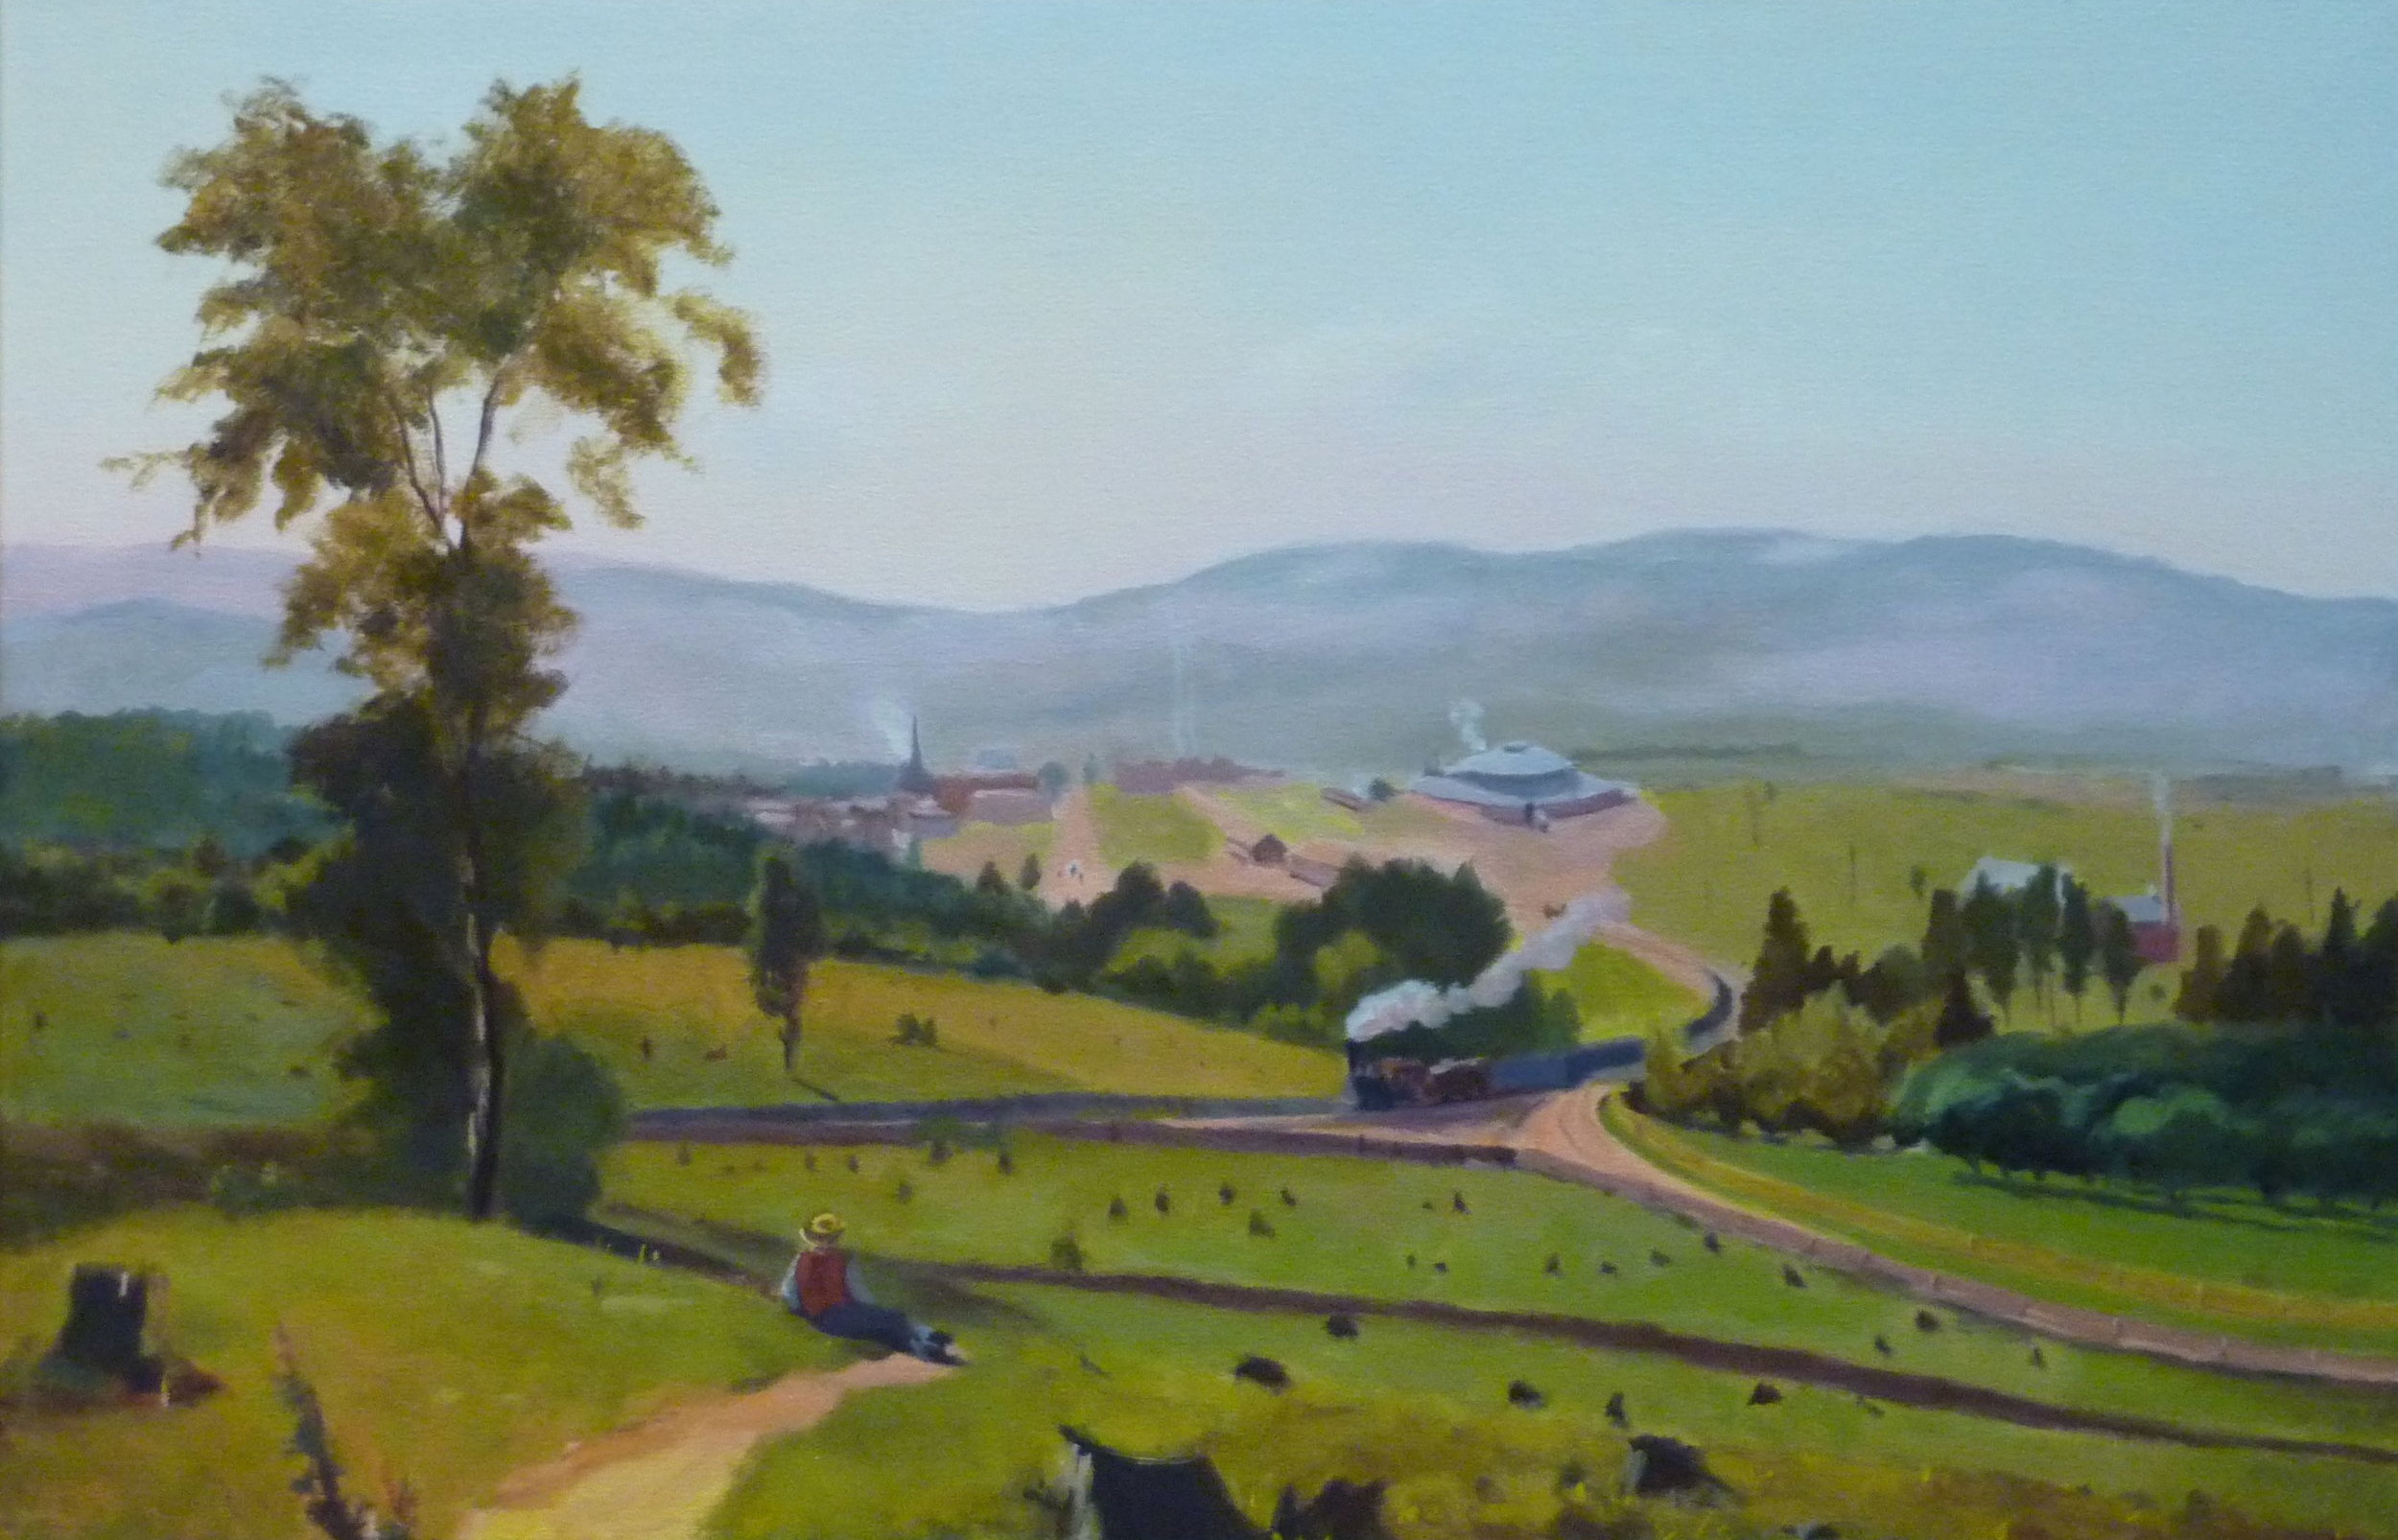 Copy after George Innes    The Lackawanna Valley